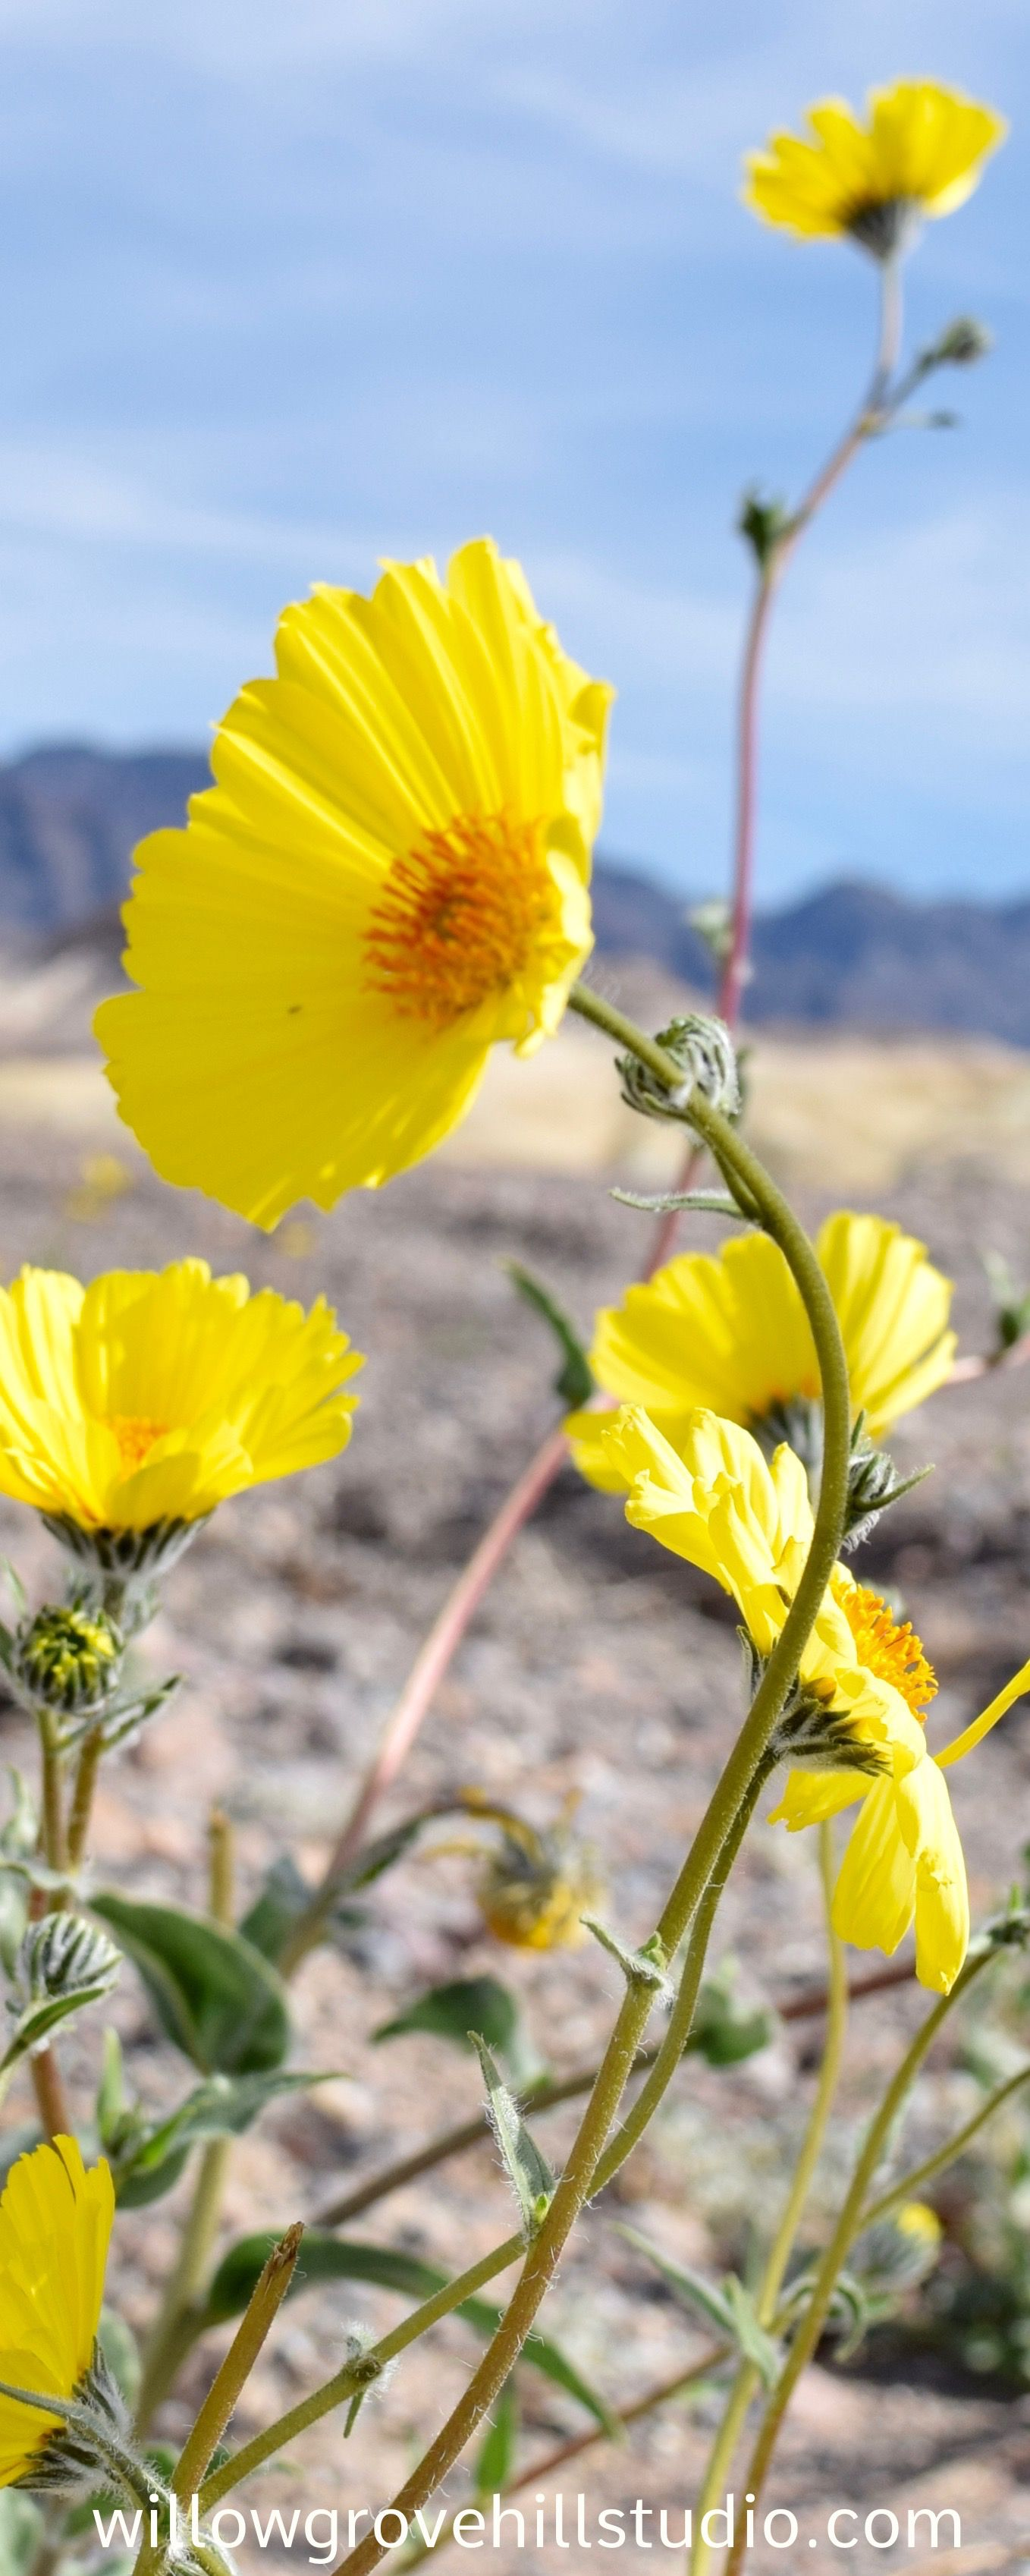 Home Amazing Blooms Pinterest California Wildflowers Death